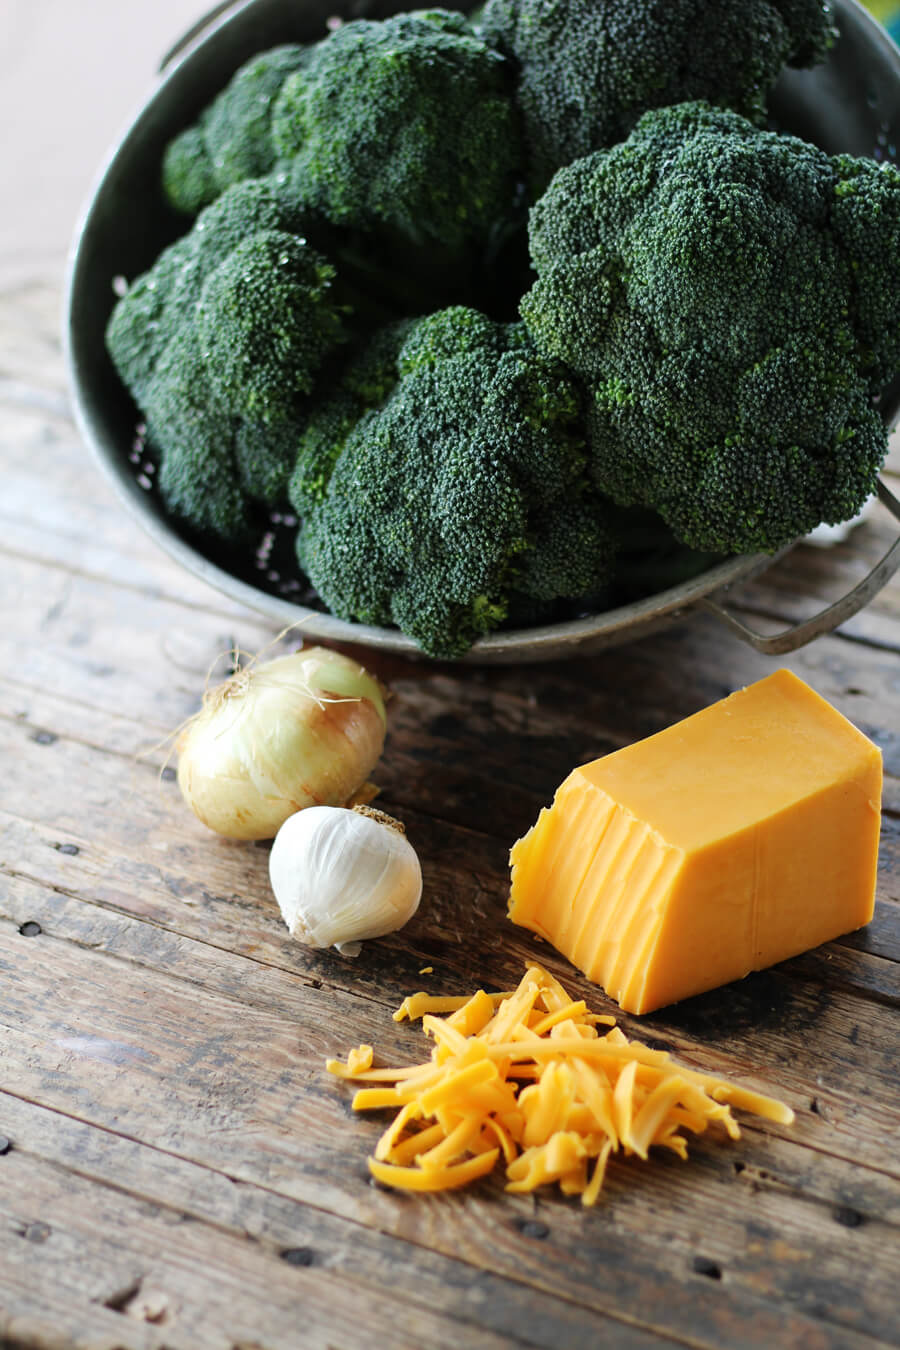 heads of fresh broccoli in a colander next to onion, garlic, and cheddar cheese